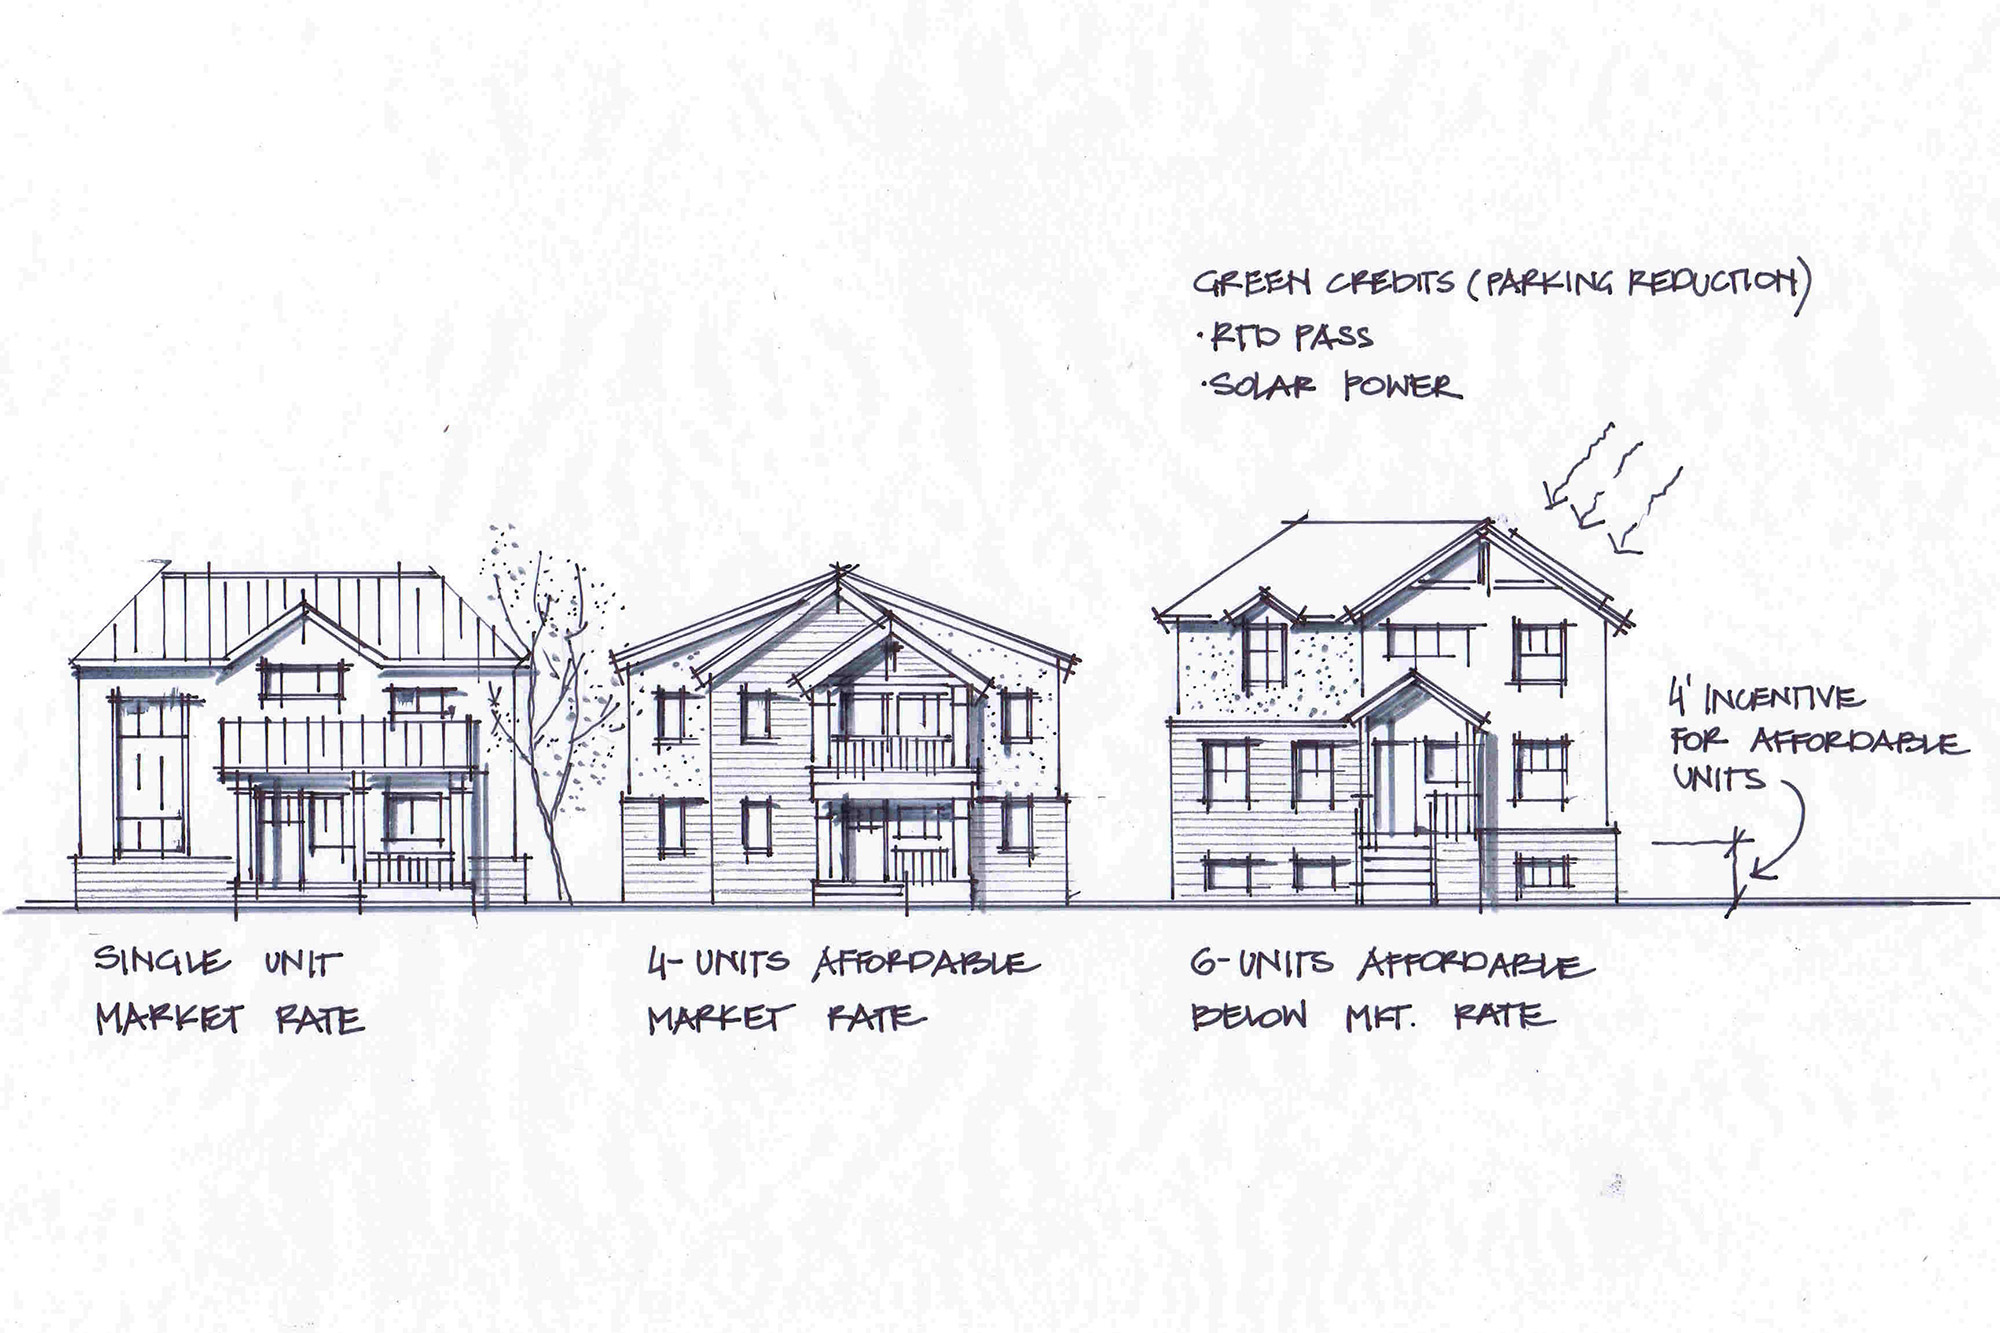 Zoning Codes—Tools for Segregation or Creating Complete Neighborhoods?